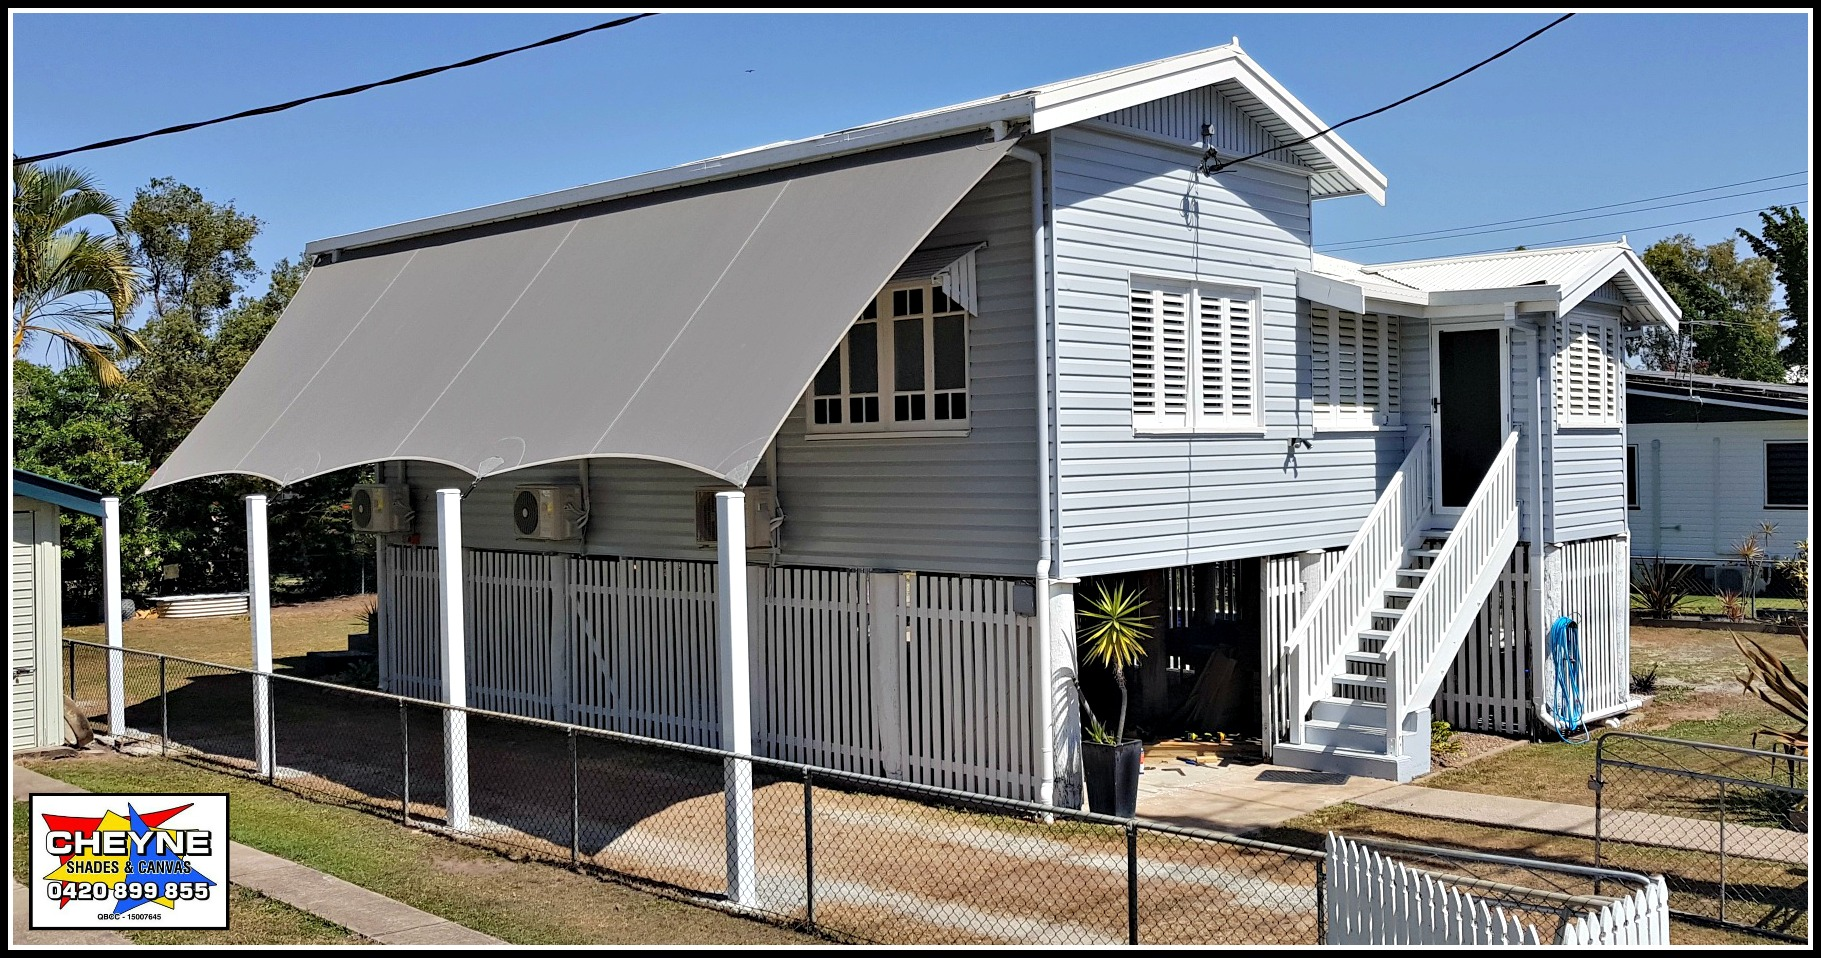 Cheyne Shades and Canvas in Townsville have really utilised the great potential of DualShade 350.